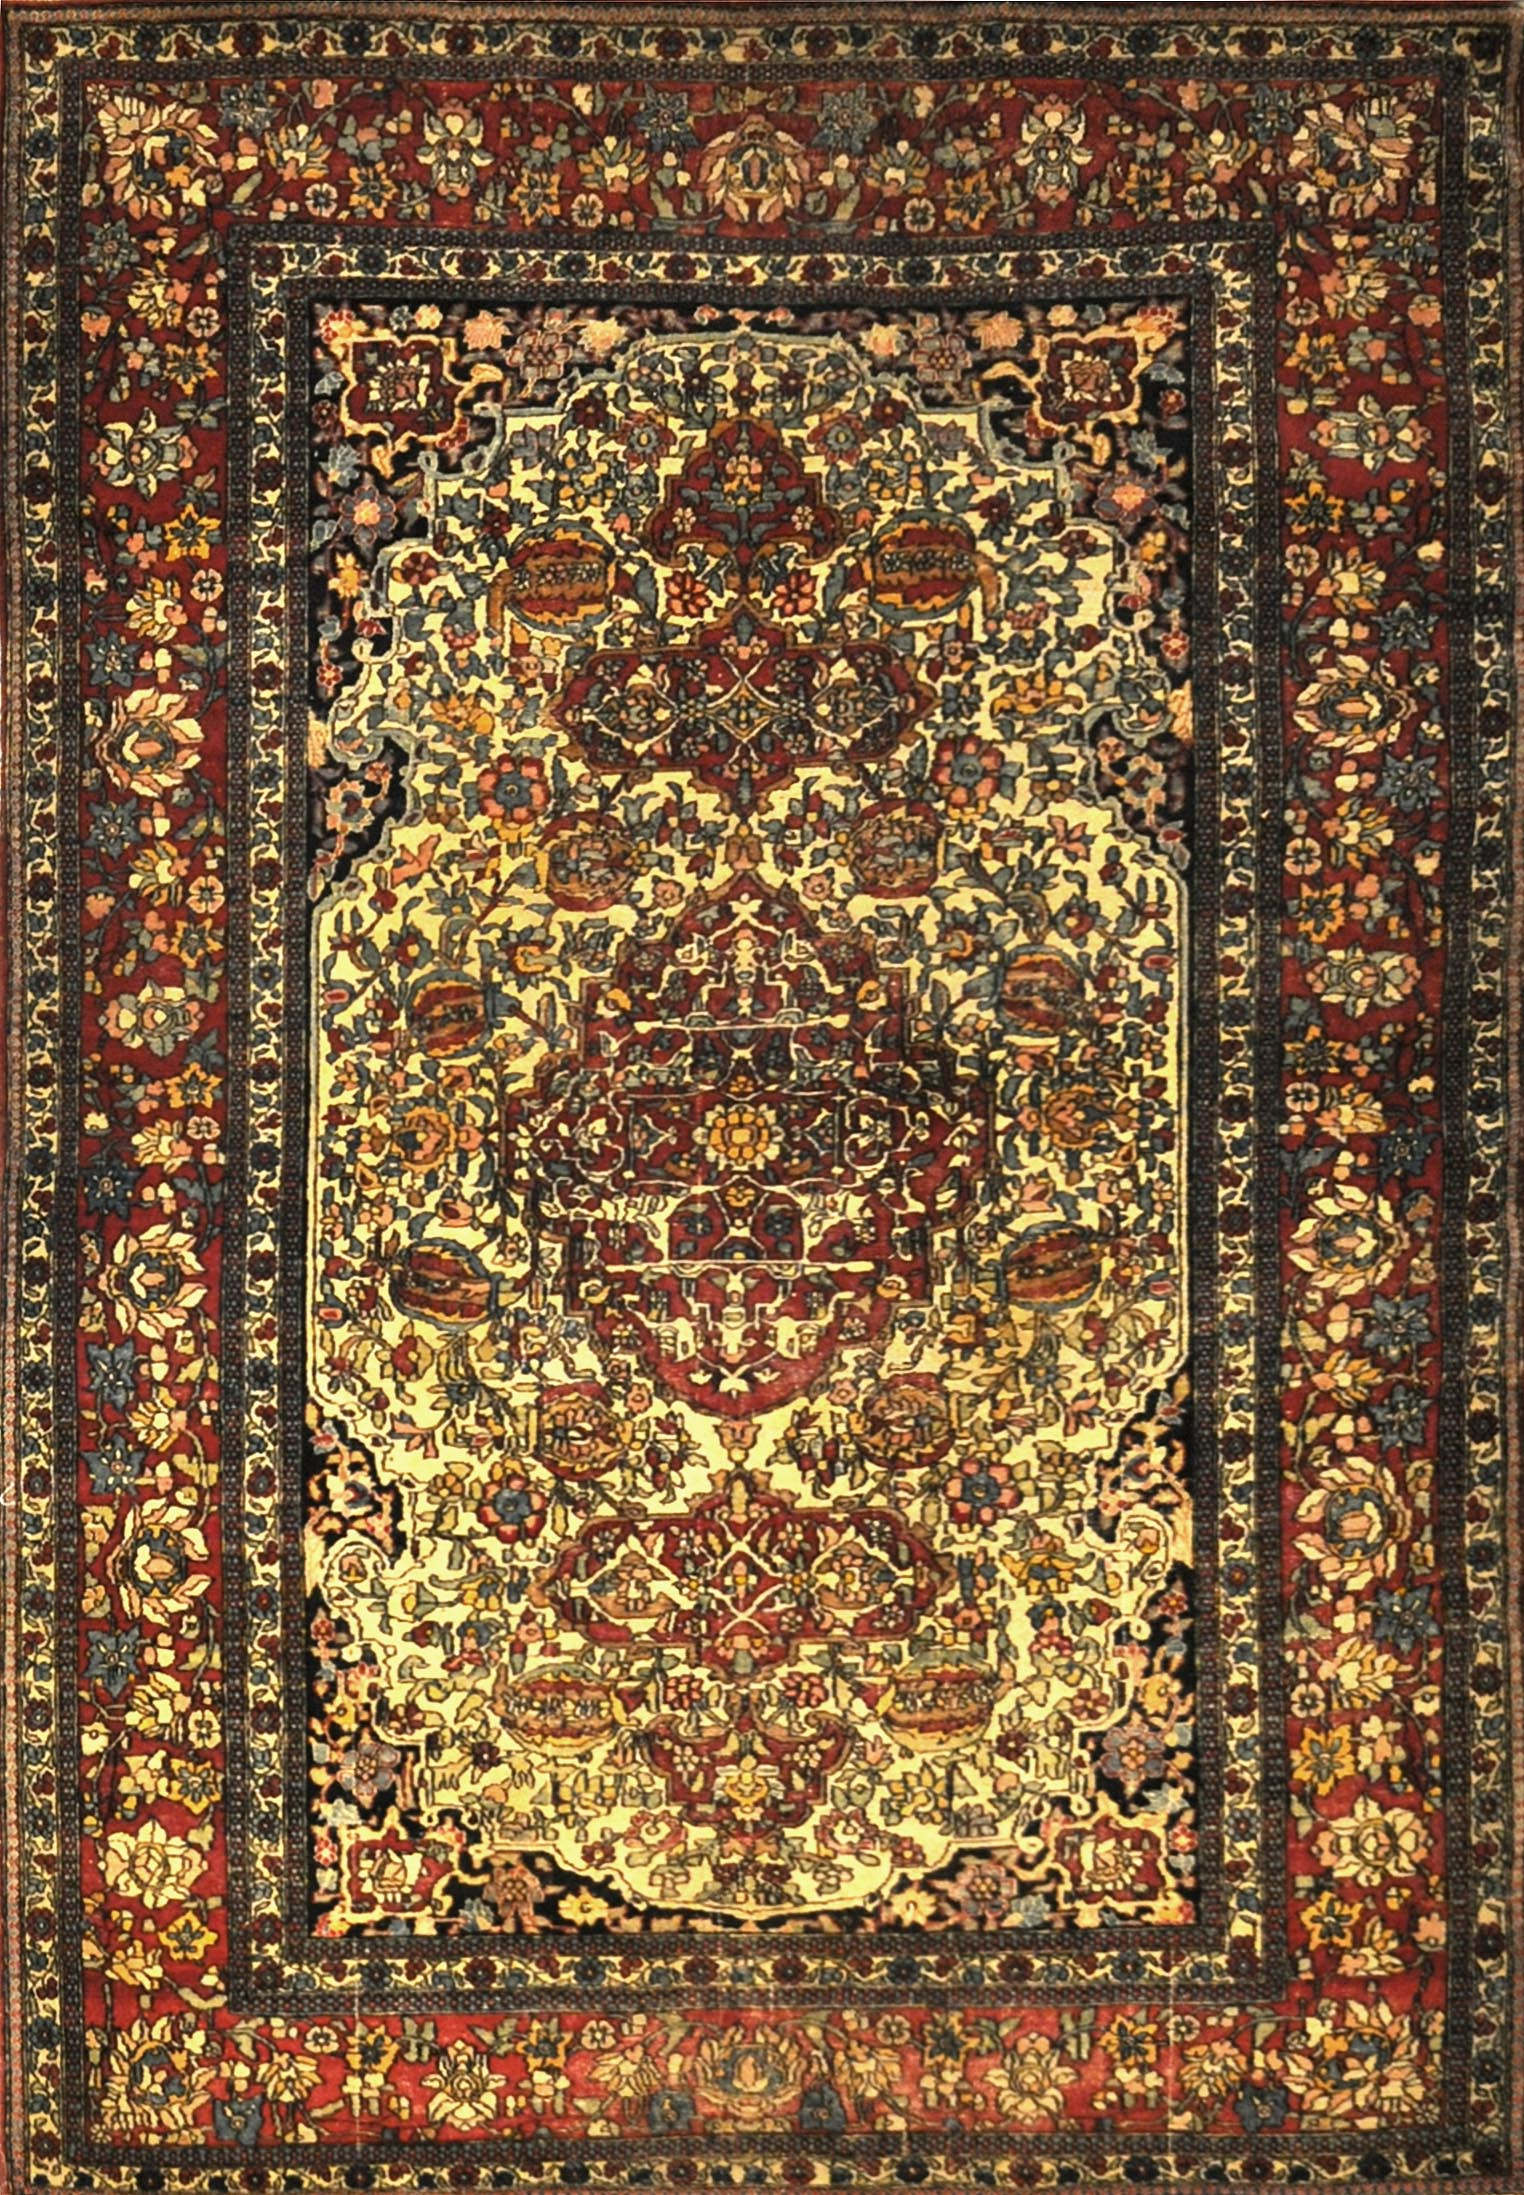 Antique Kerman Rug Circa 1890. A piece of genuine authentic antique woven carpet art sold by Santa Barbara Design Center, Rugs and More.